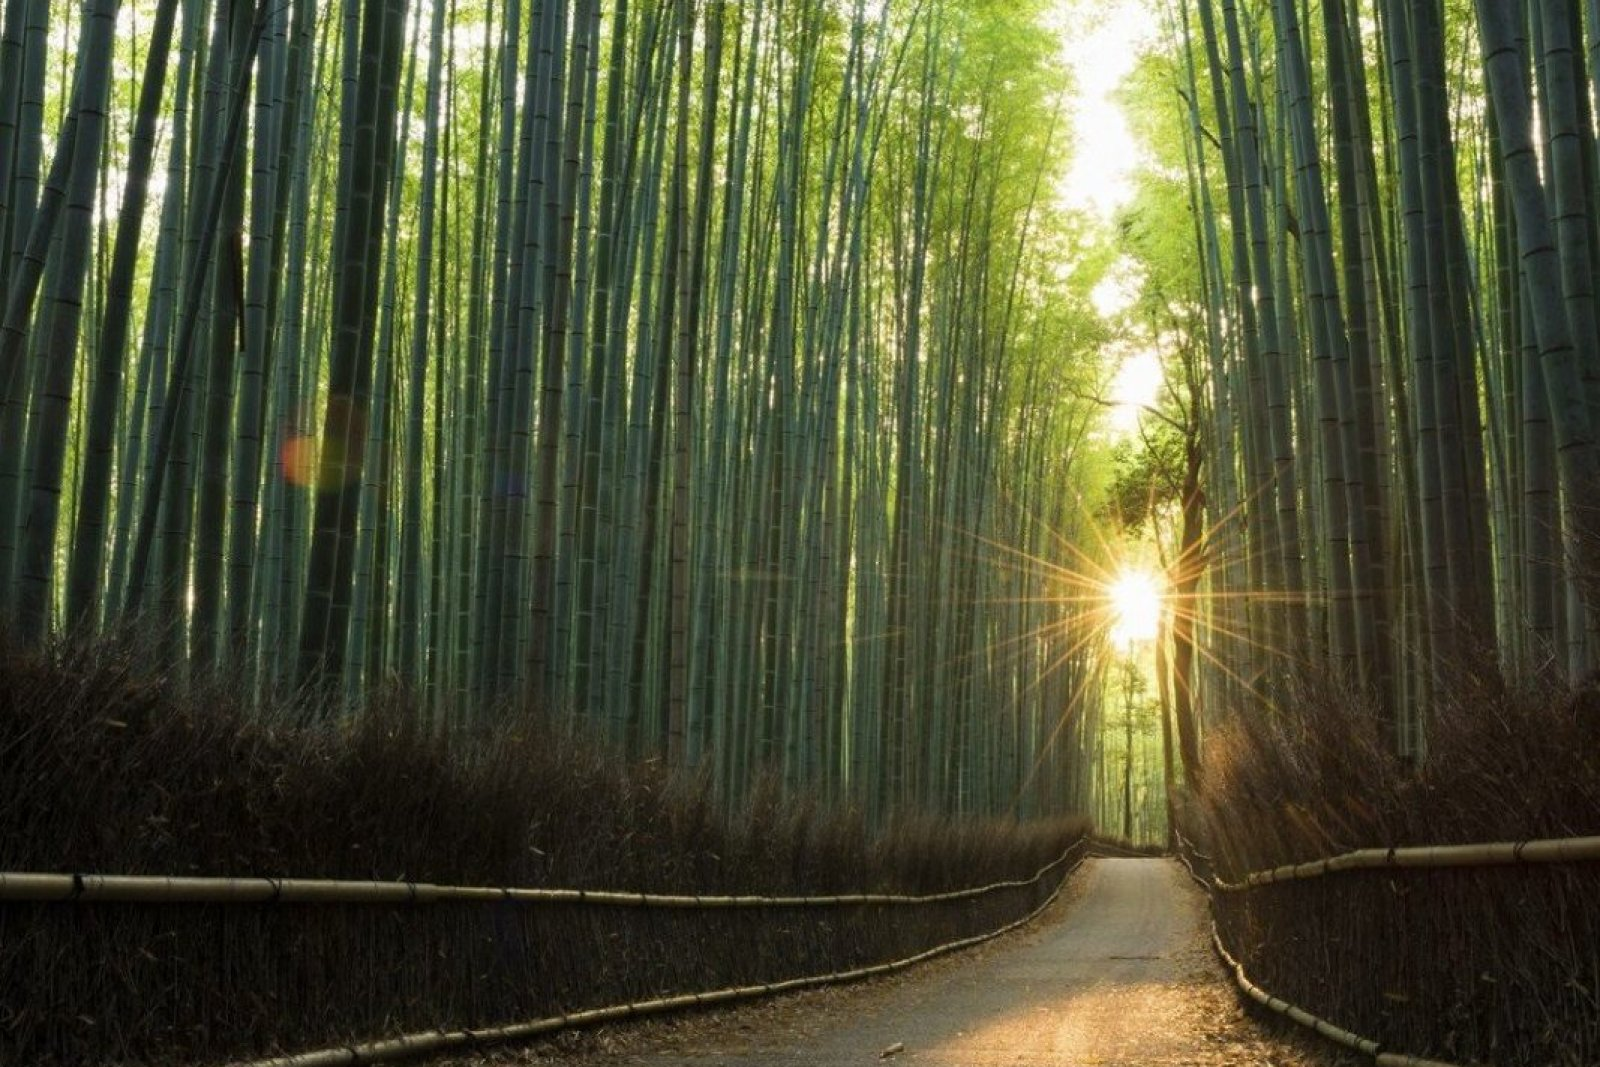 Beauty in nature at a pristine bamboo forest at sunrise